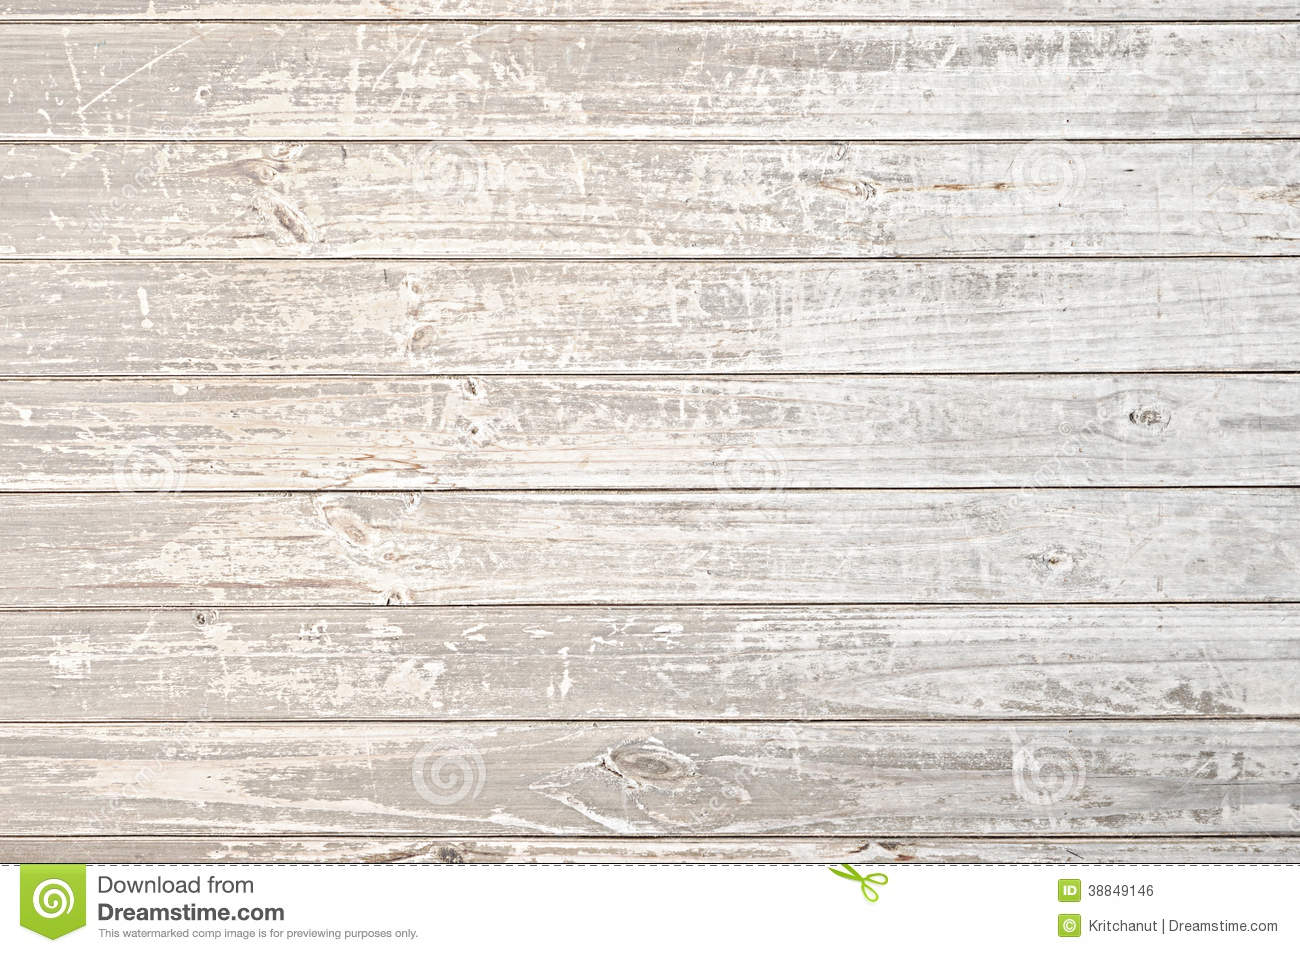 Wood background with clipart lights.